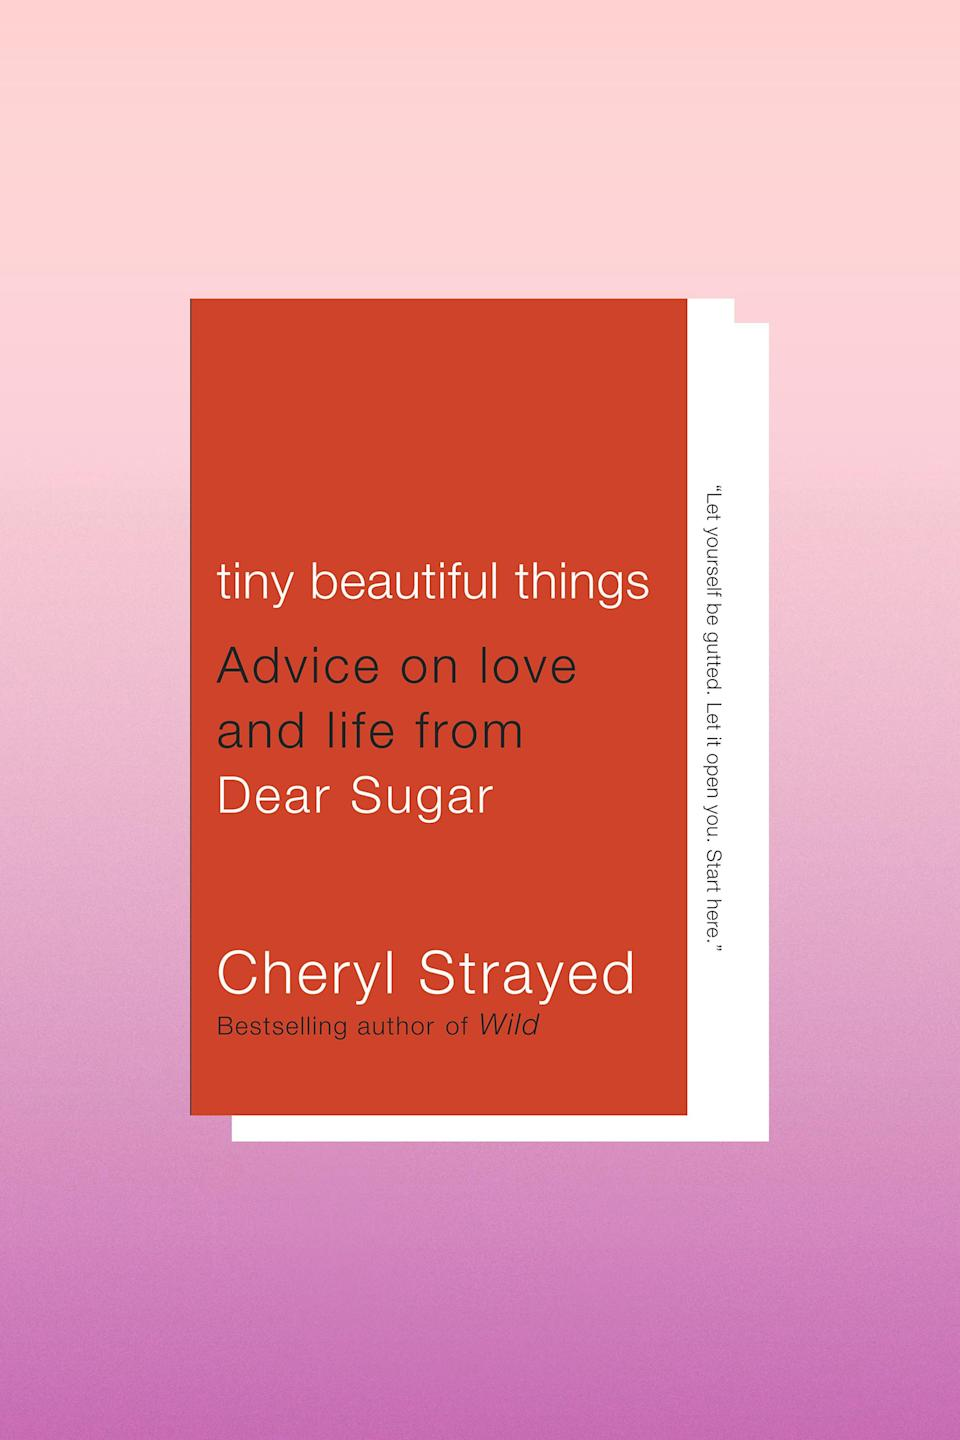 """This book is a compilation of advice columns from Cheryl Strayed, and chances are one of them has <em>exactly</em> what you need to hear.<br><br>""""You cannot convince people to love you. This is an absolute rule. No one will ever give you love because you want him or her to give it. Real love moves freely in both directions. Don't waste your time on anything else."""" – <em>Tiny Beautiful Things</em>"""